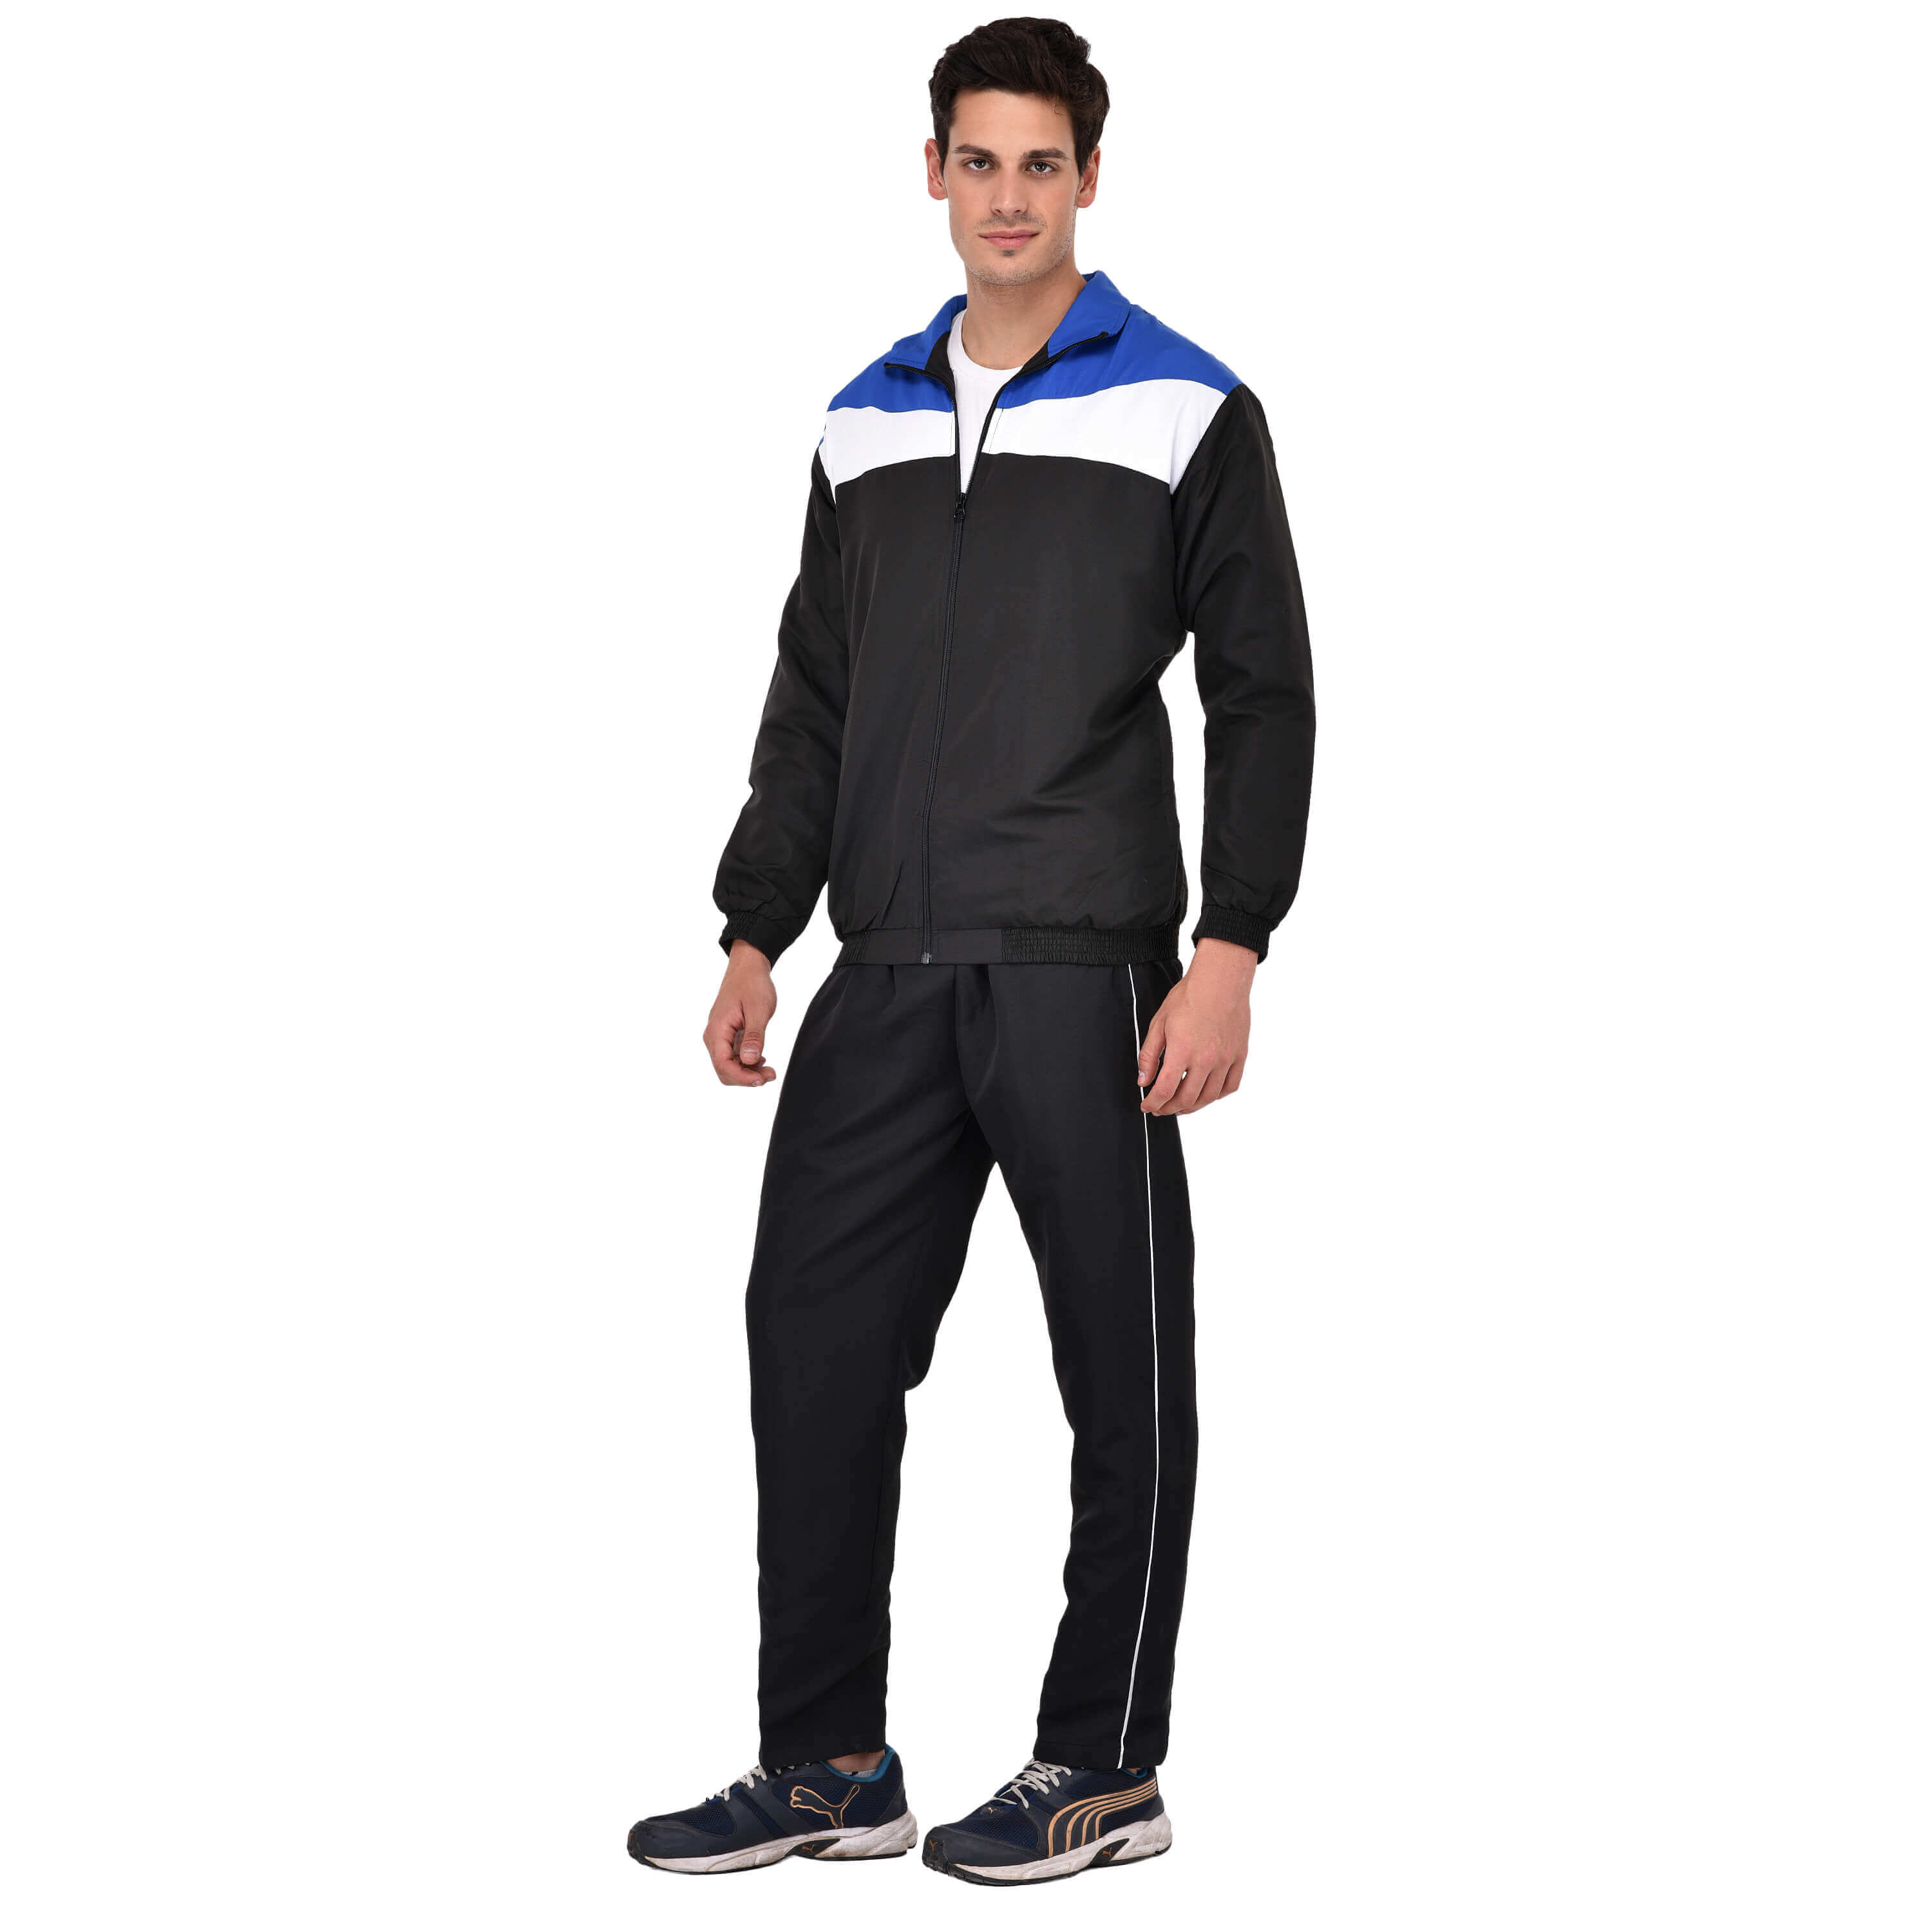 Tracksuit Set Manufacturers in Thiruvananthapuram